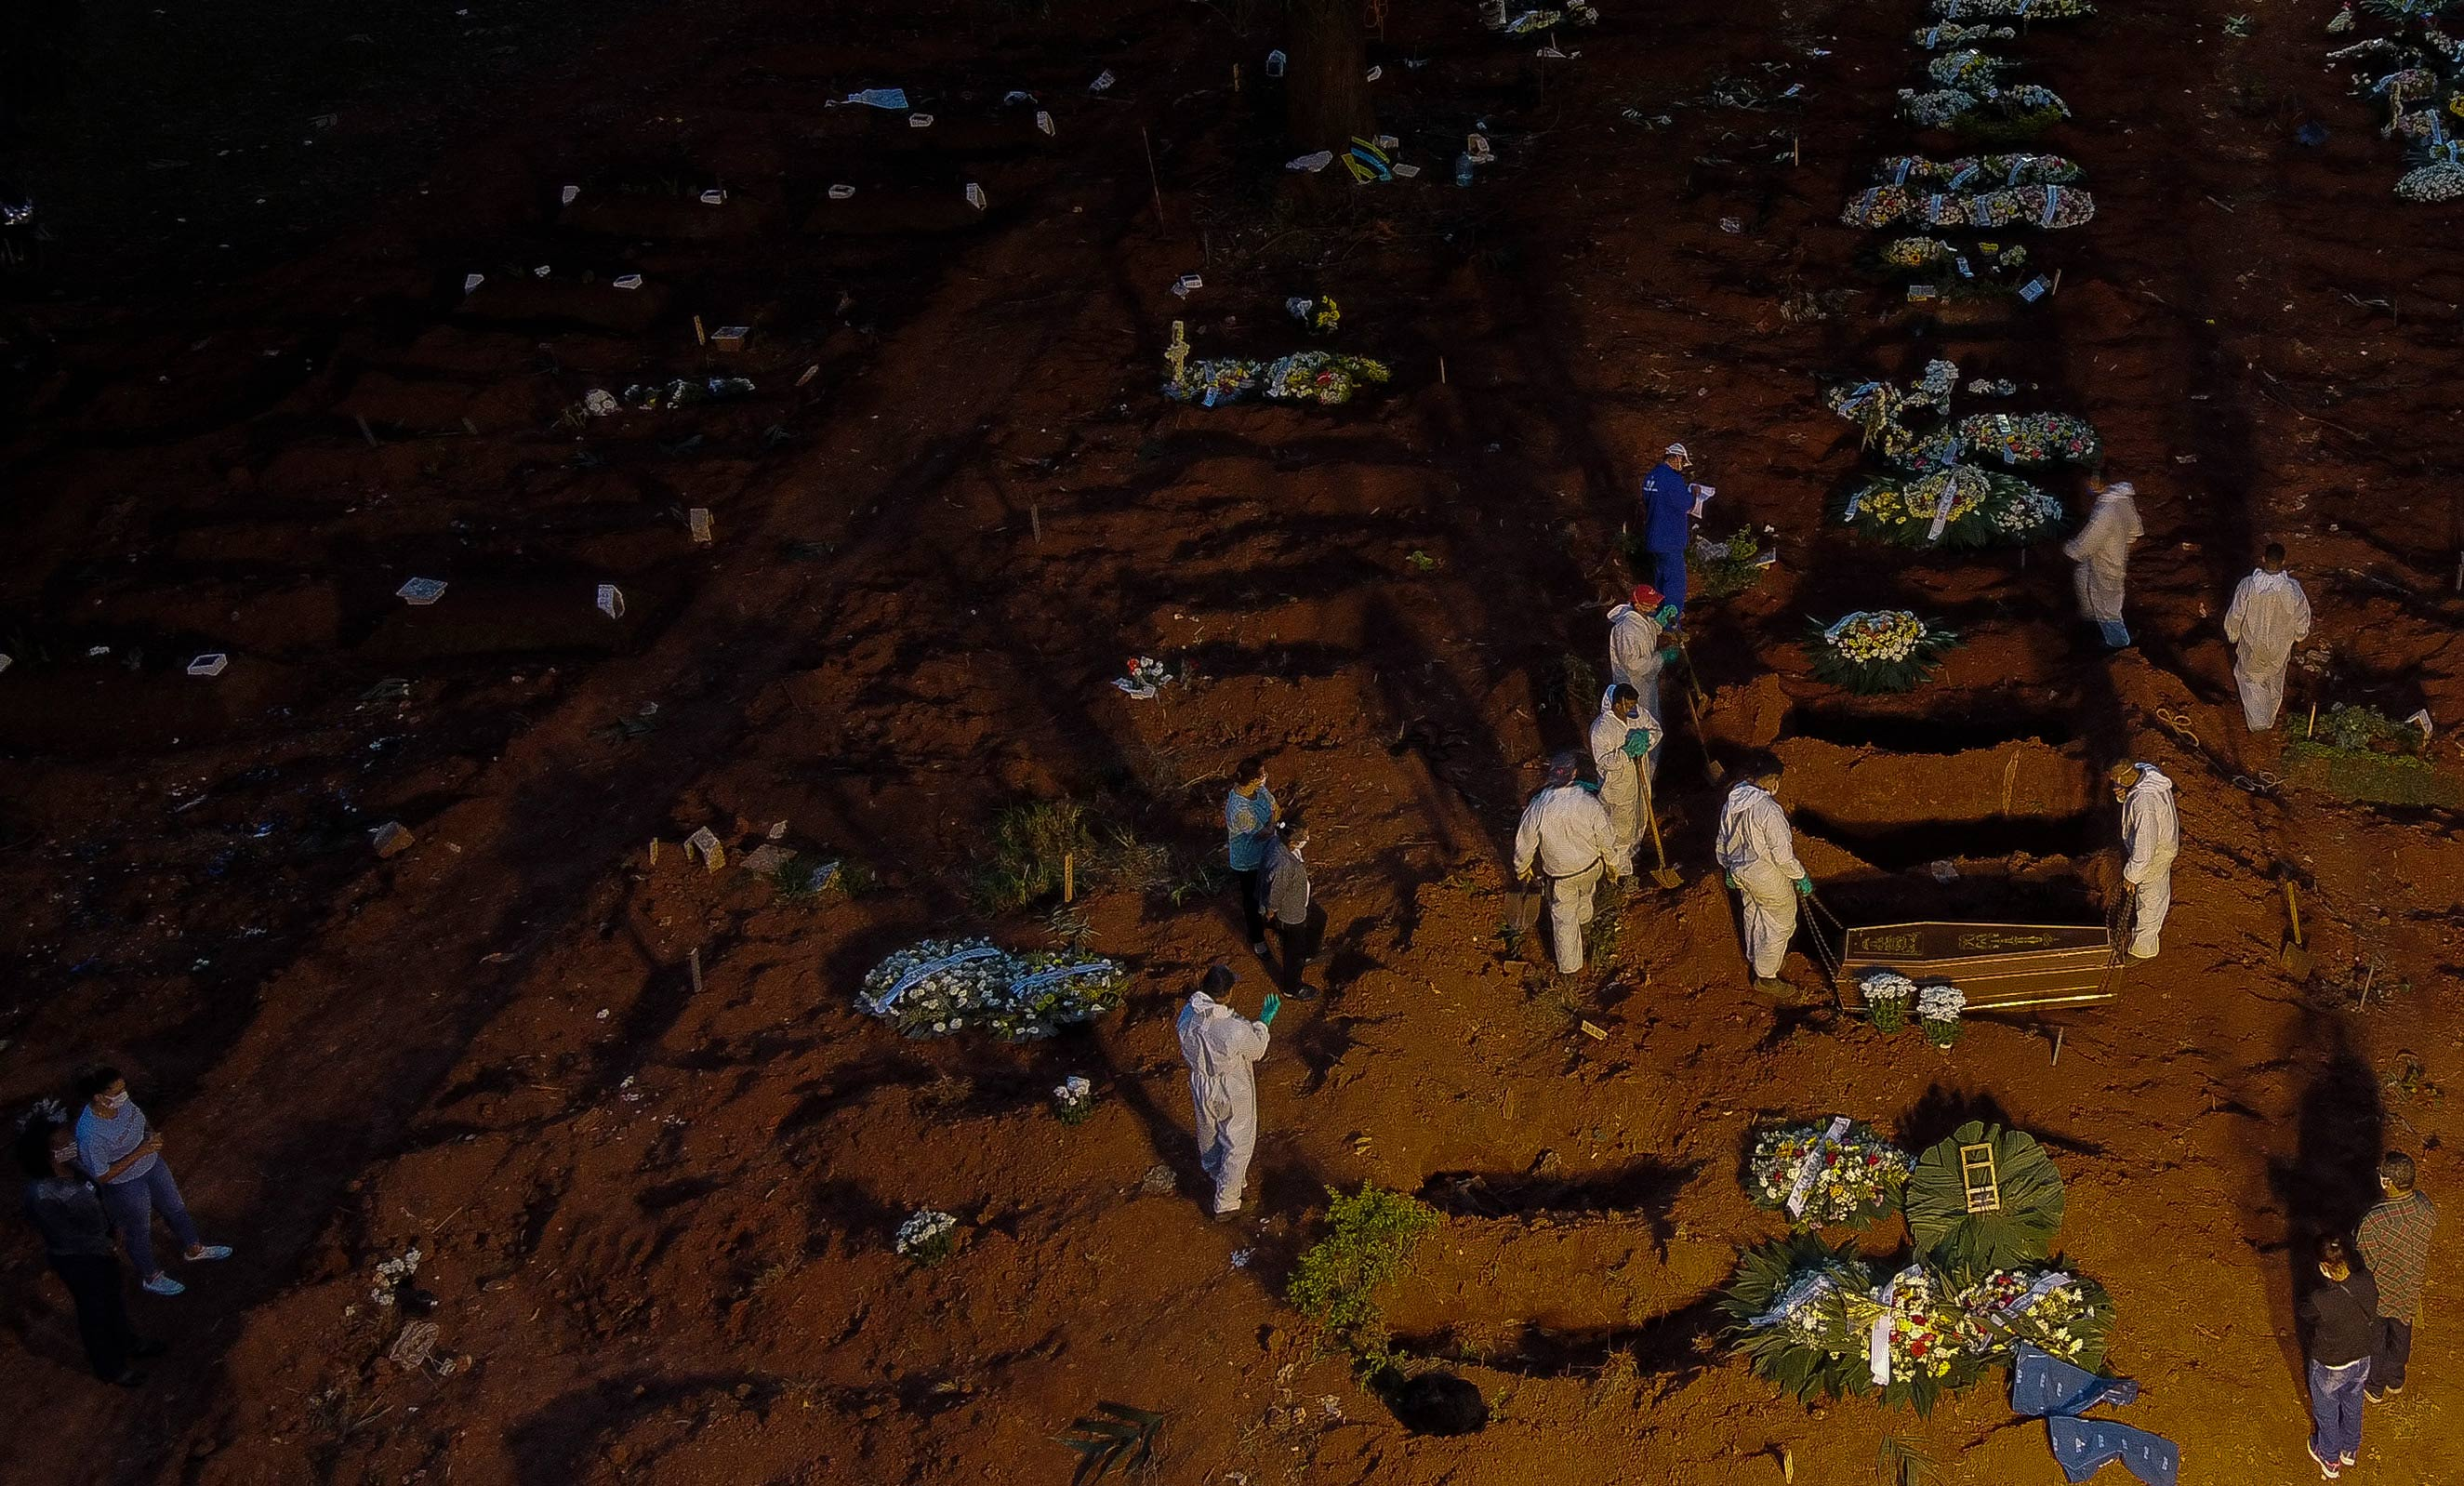 Workers bury a coffin at the Vila Formosa cemetery in Sao Paulo, Brazil, on April 17.